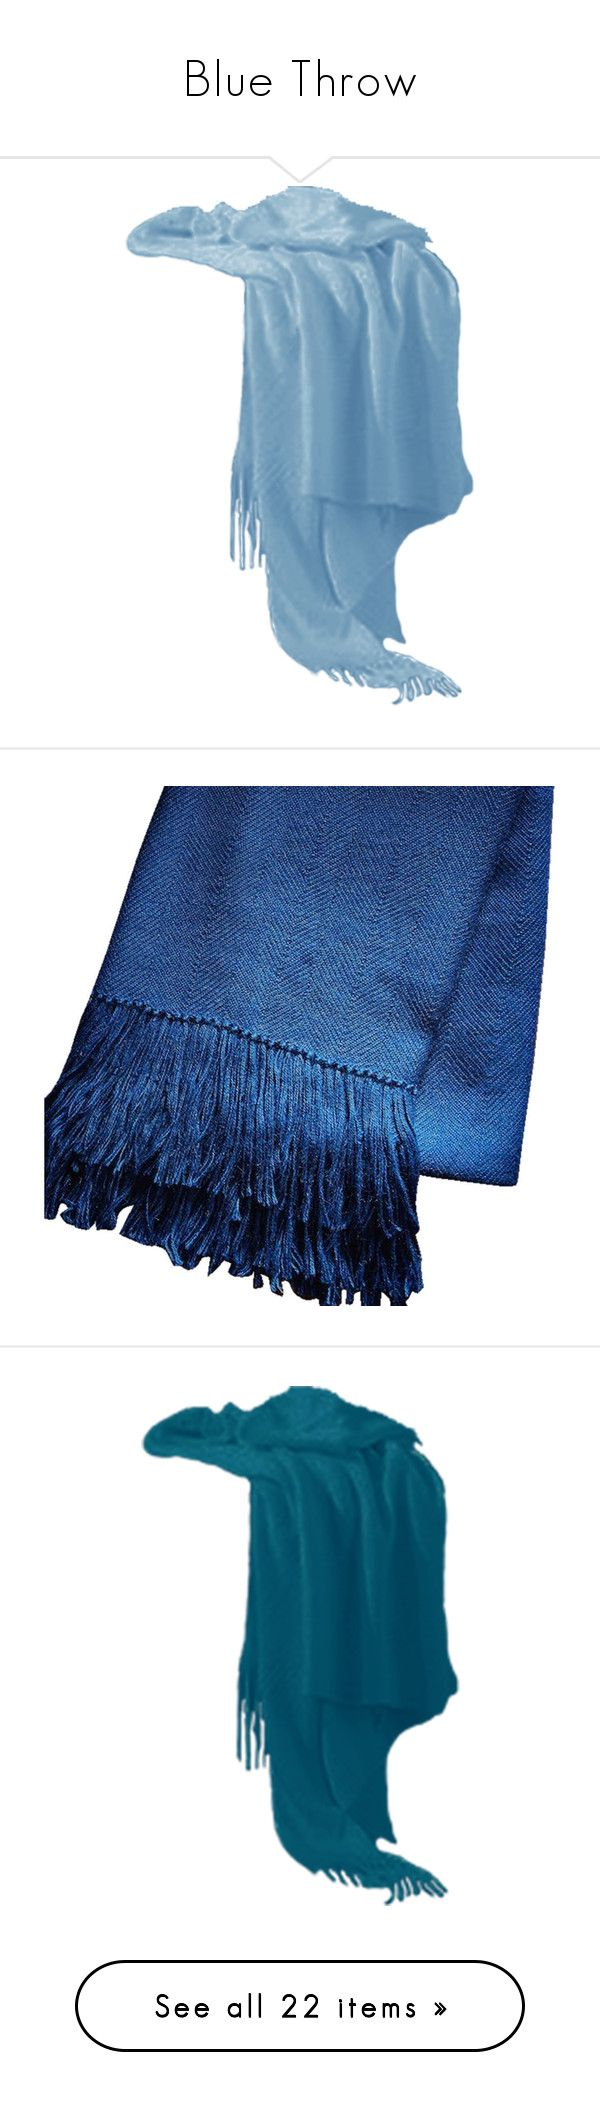 Bright blue bedding -  Blue Throw By Lailoooo Liked On Polyvore Featuring Home Decor Throw